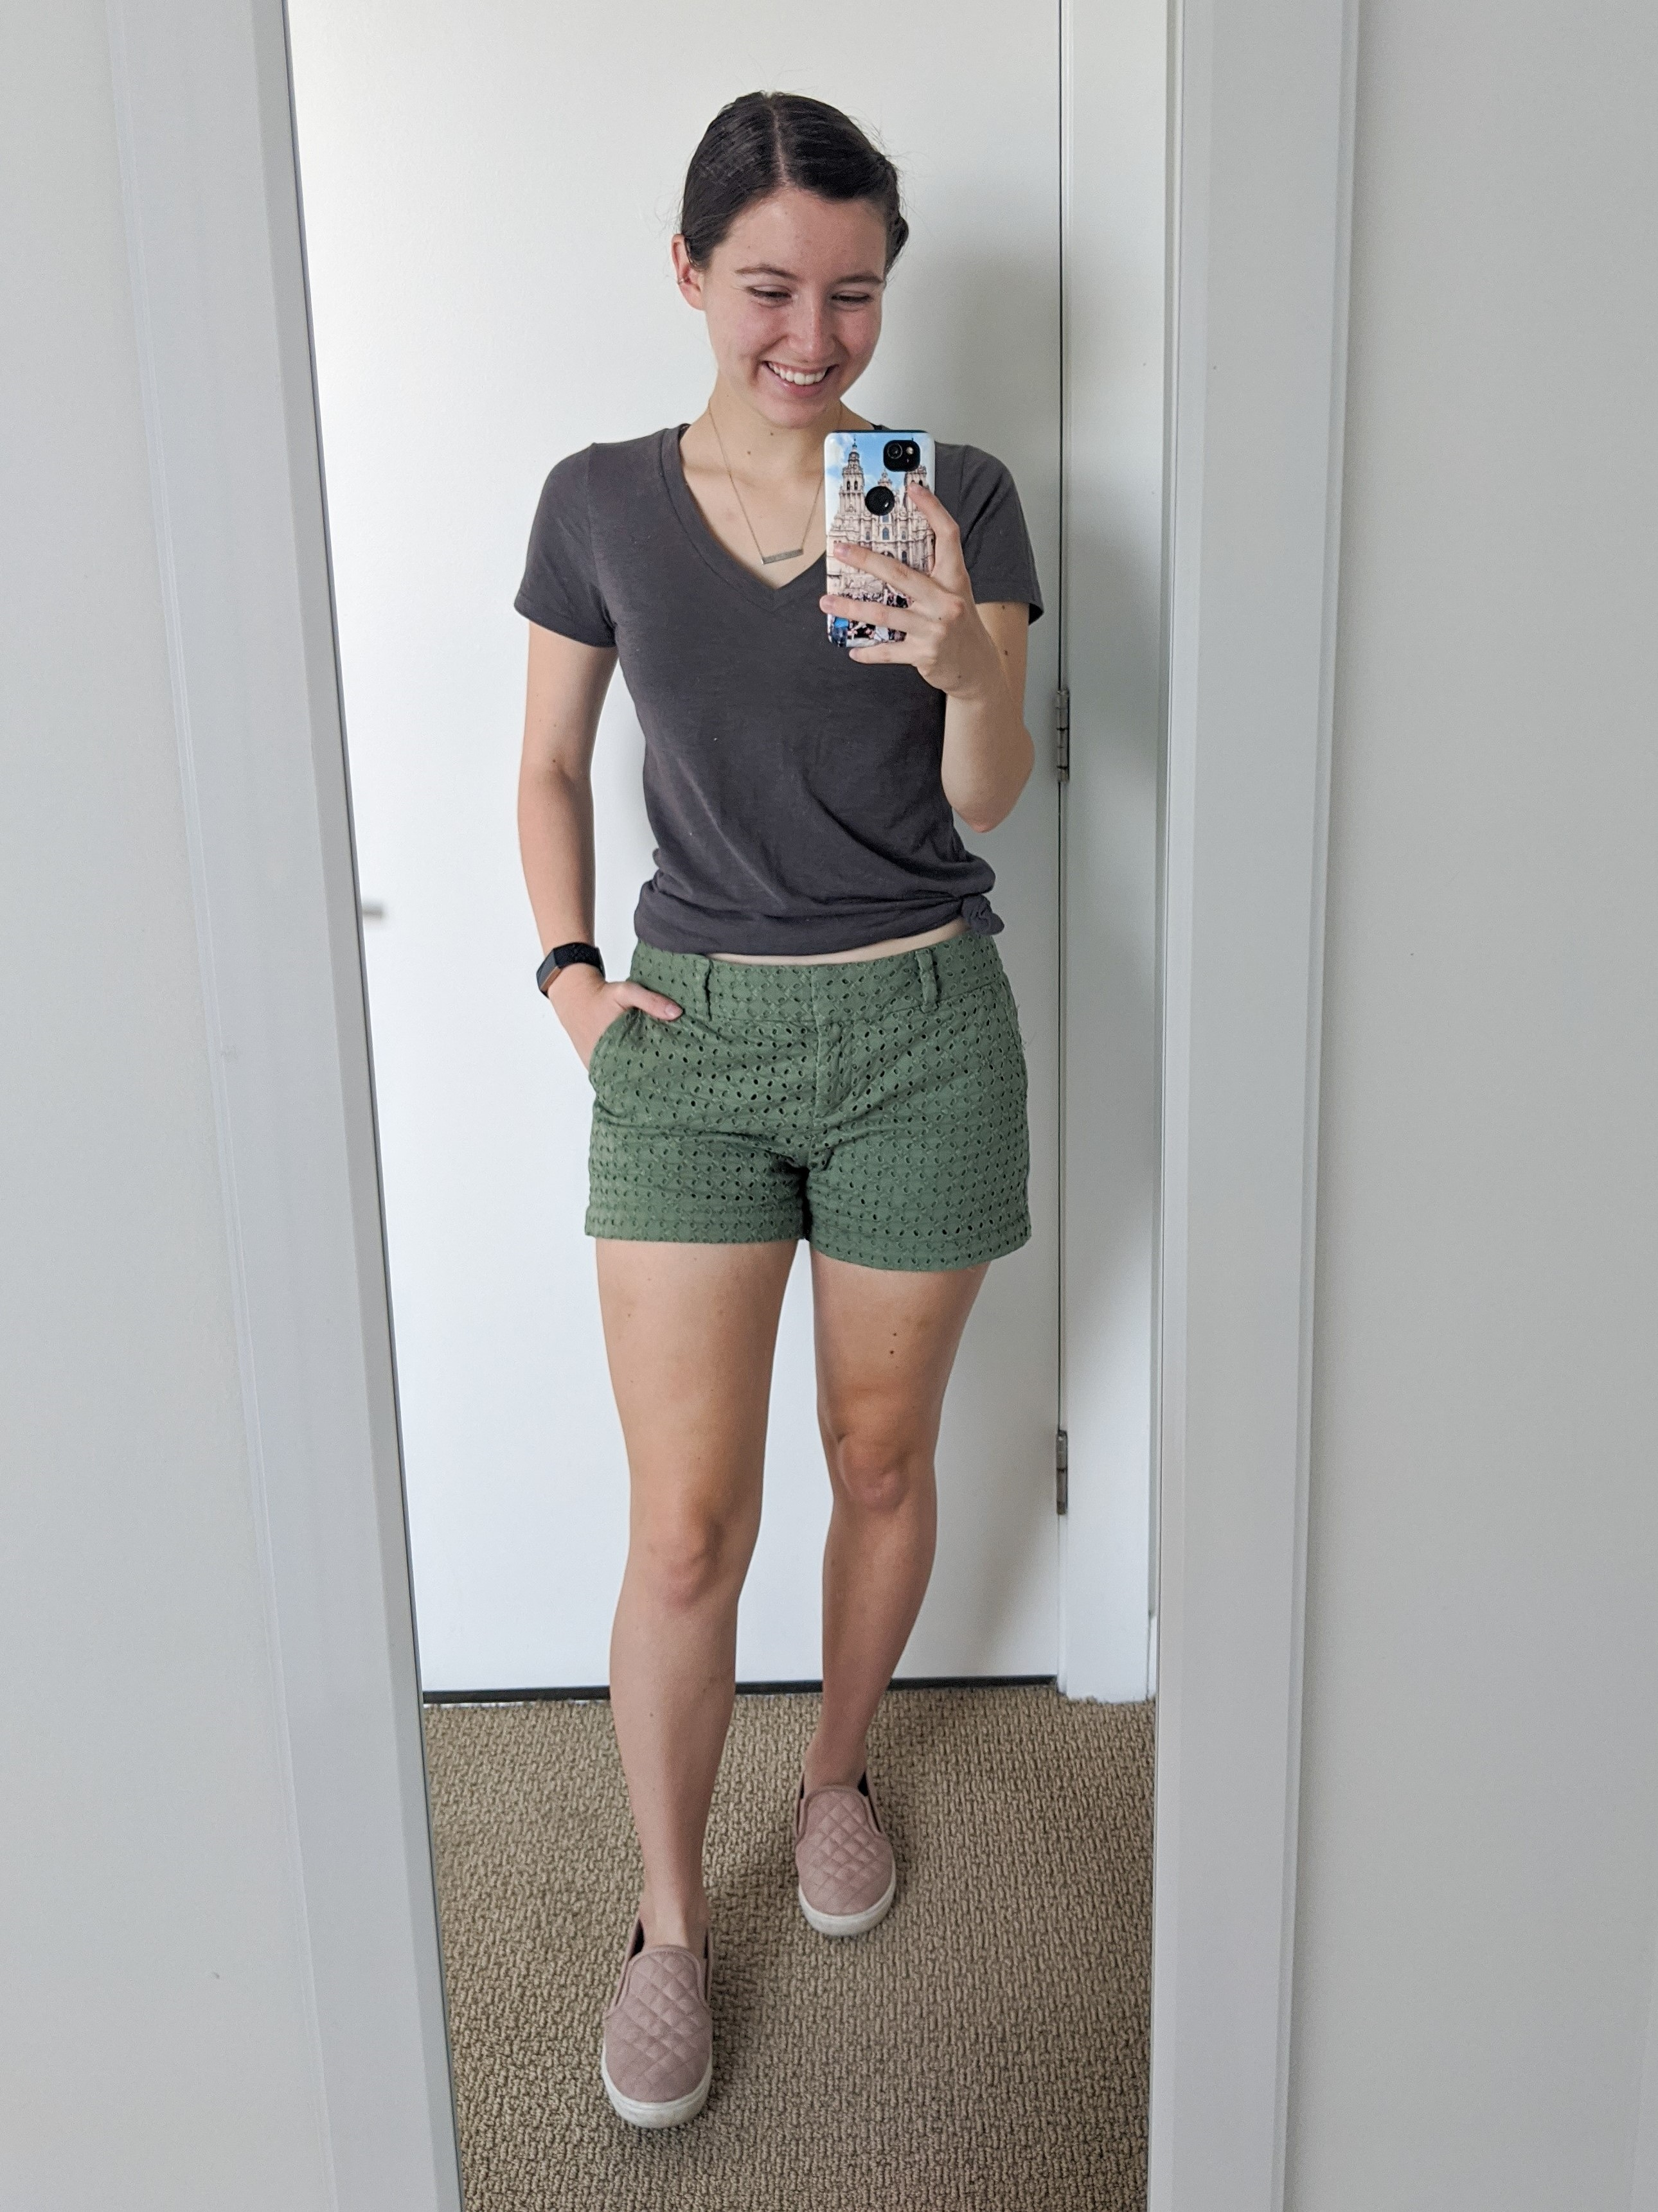 olive-green-shorts-blush-sneakers-grey-tee-college-style